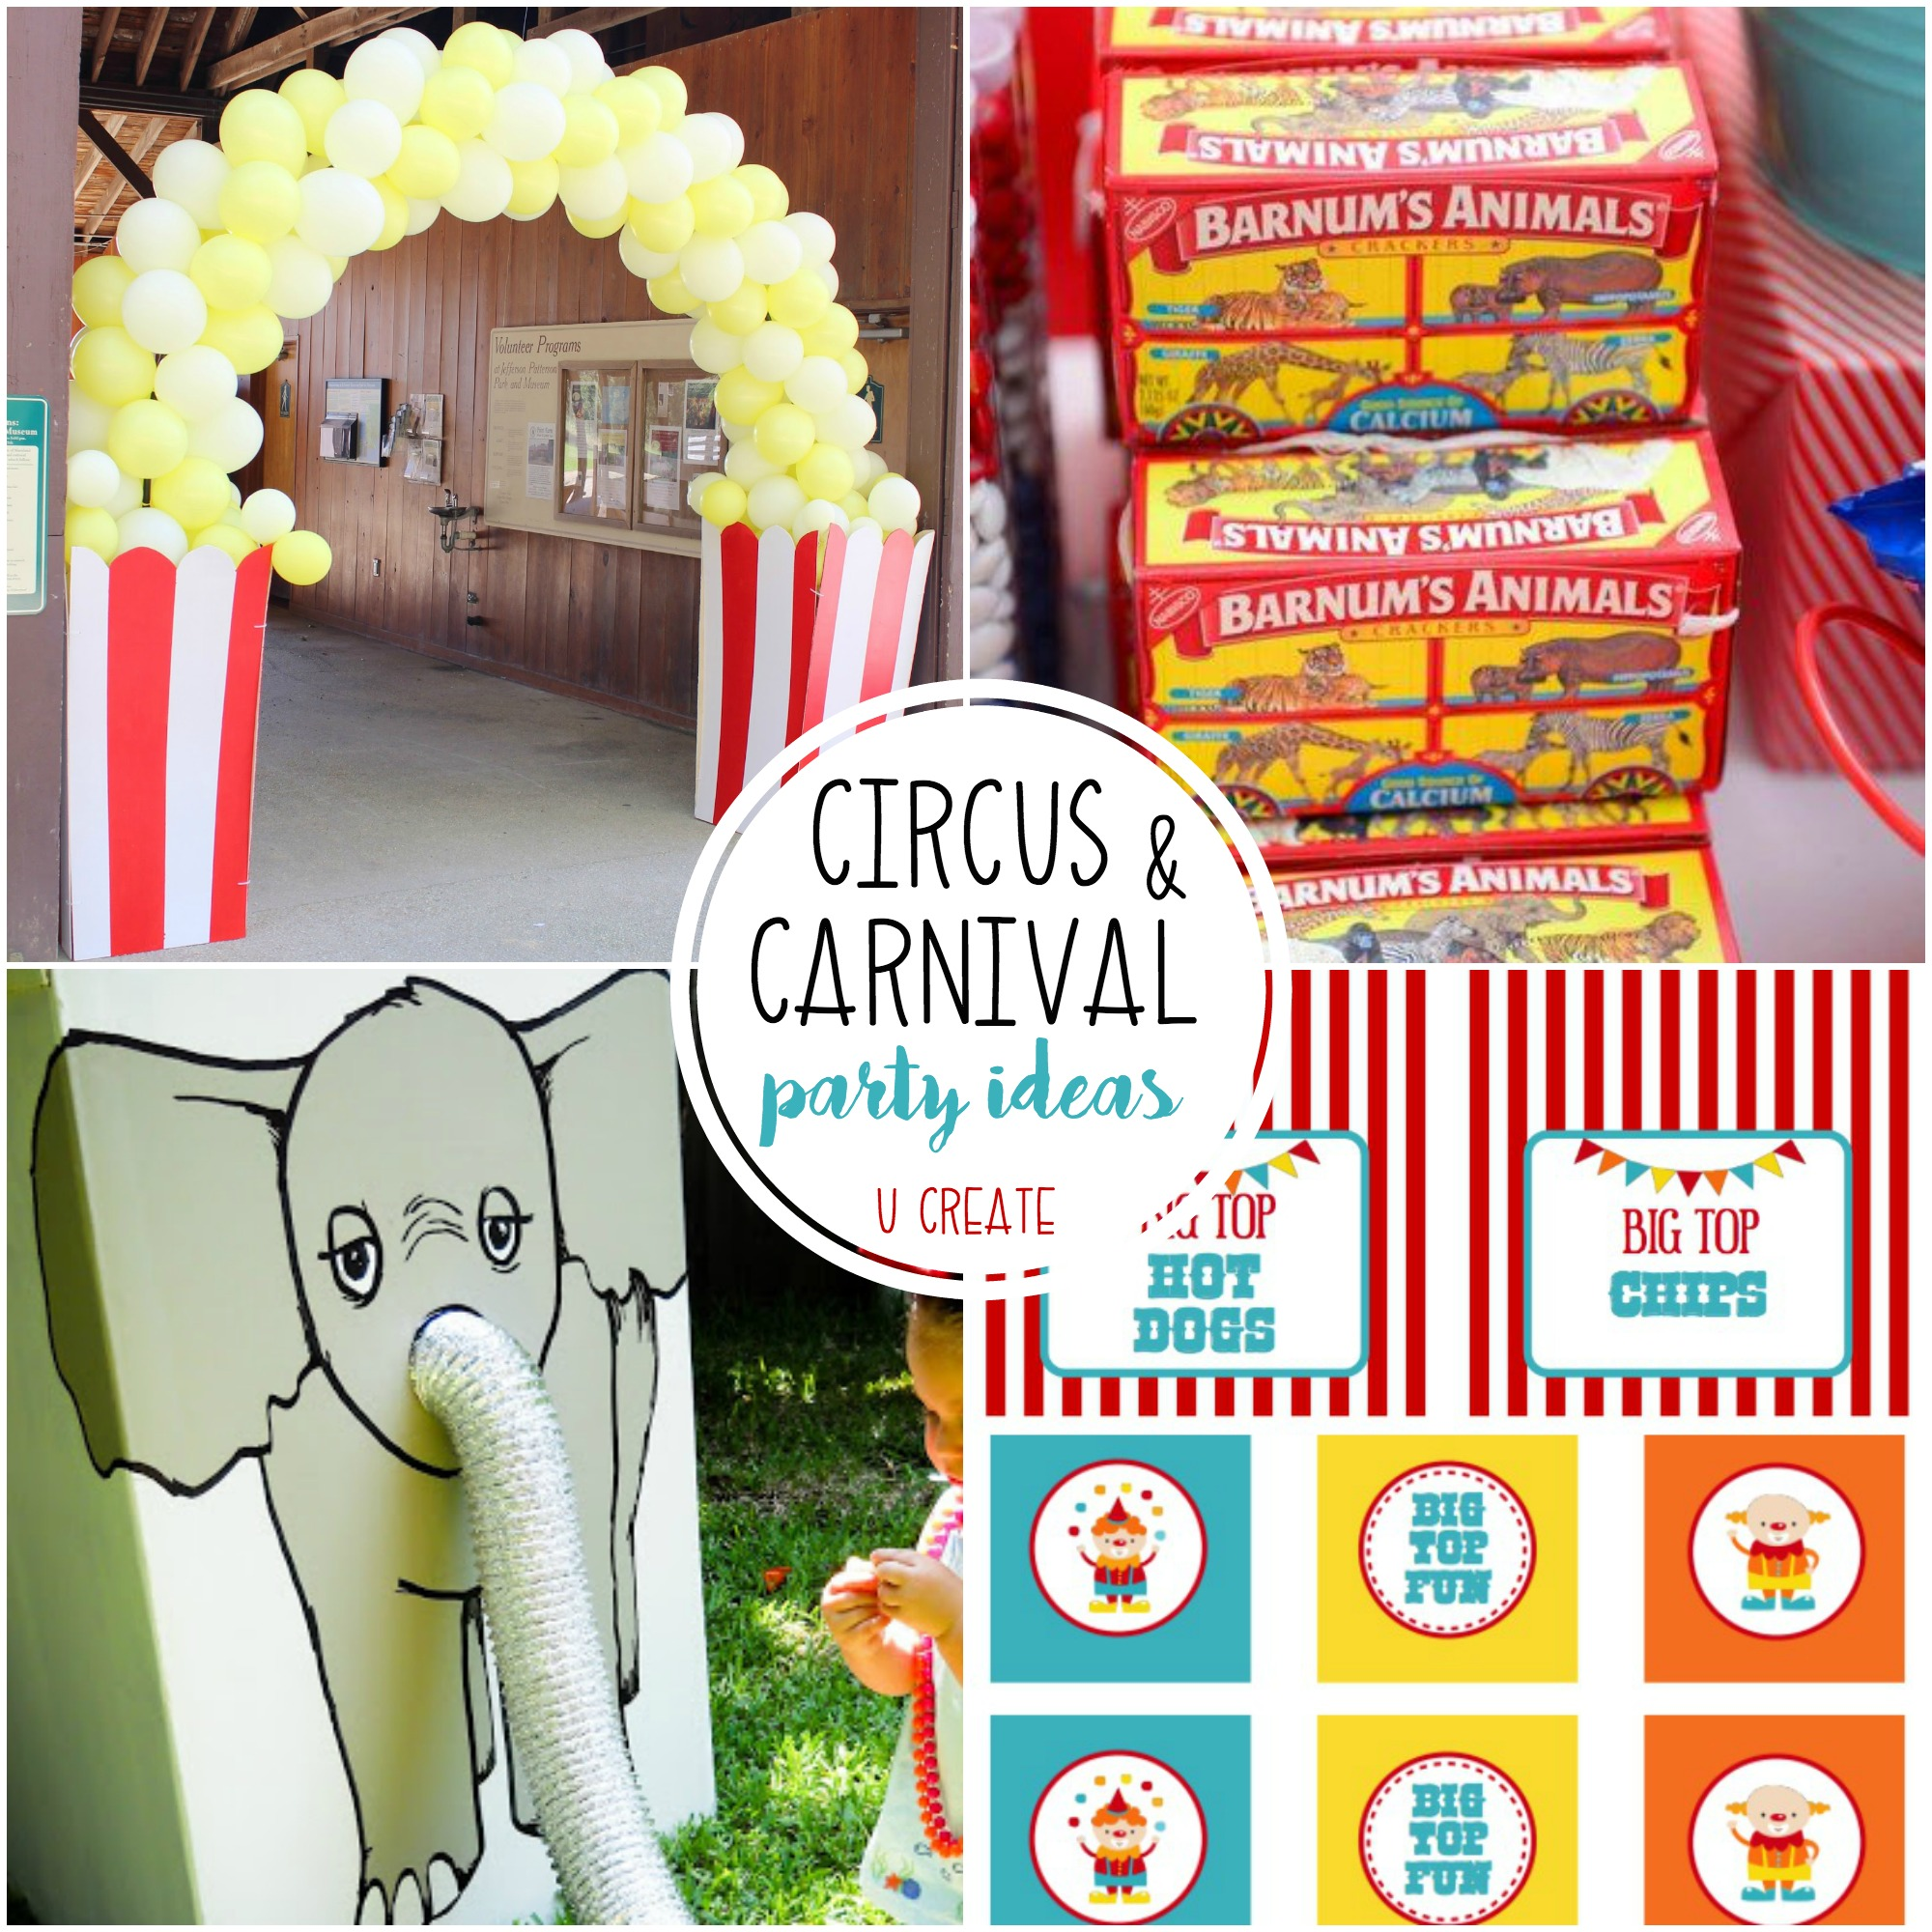 circuscarnival party ideas great for the greatest showman parties too